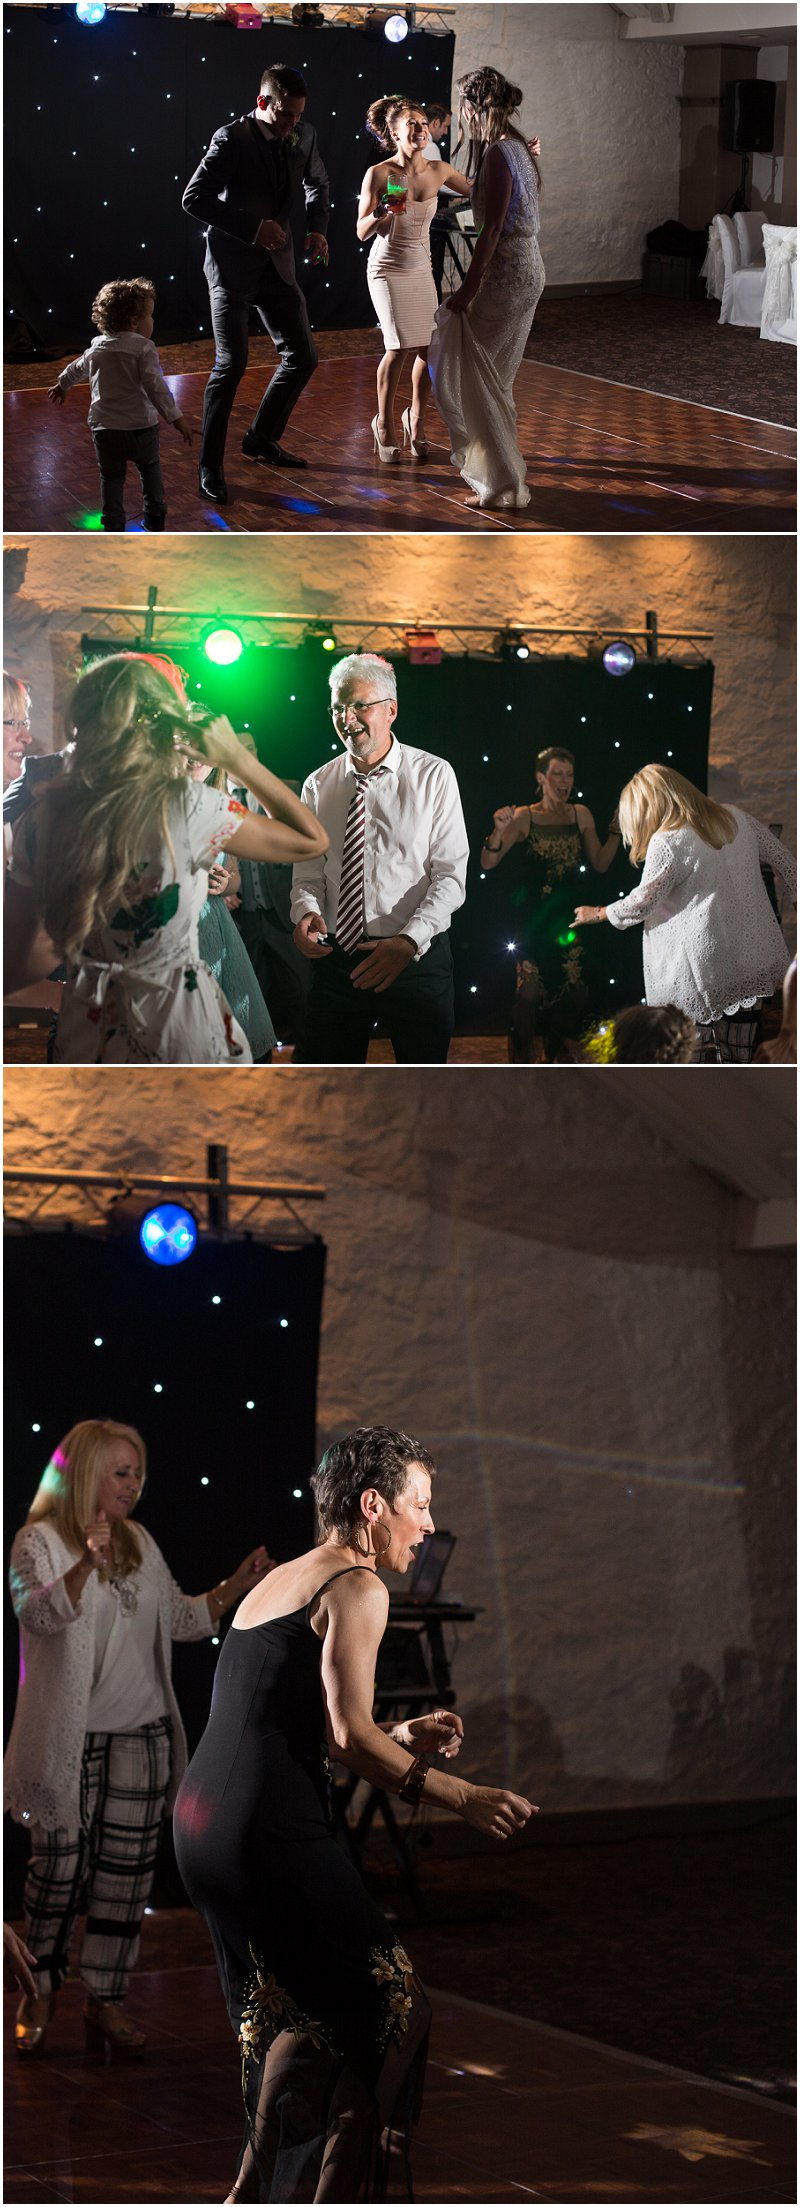 Dance floor fun at wedding reception